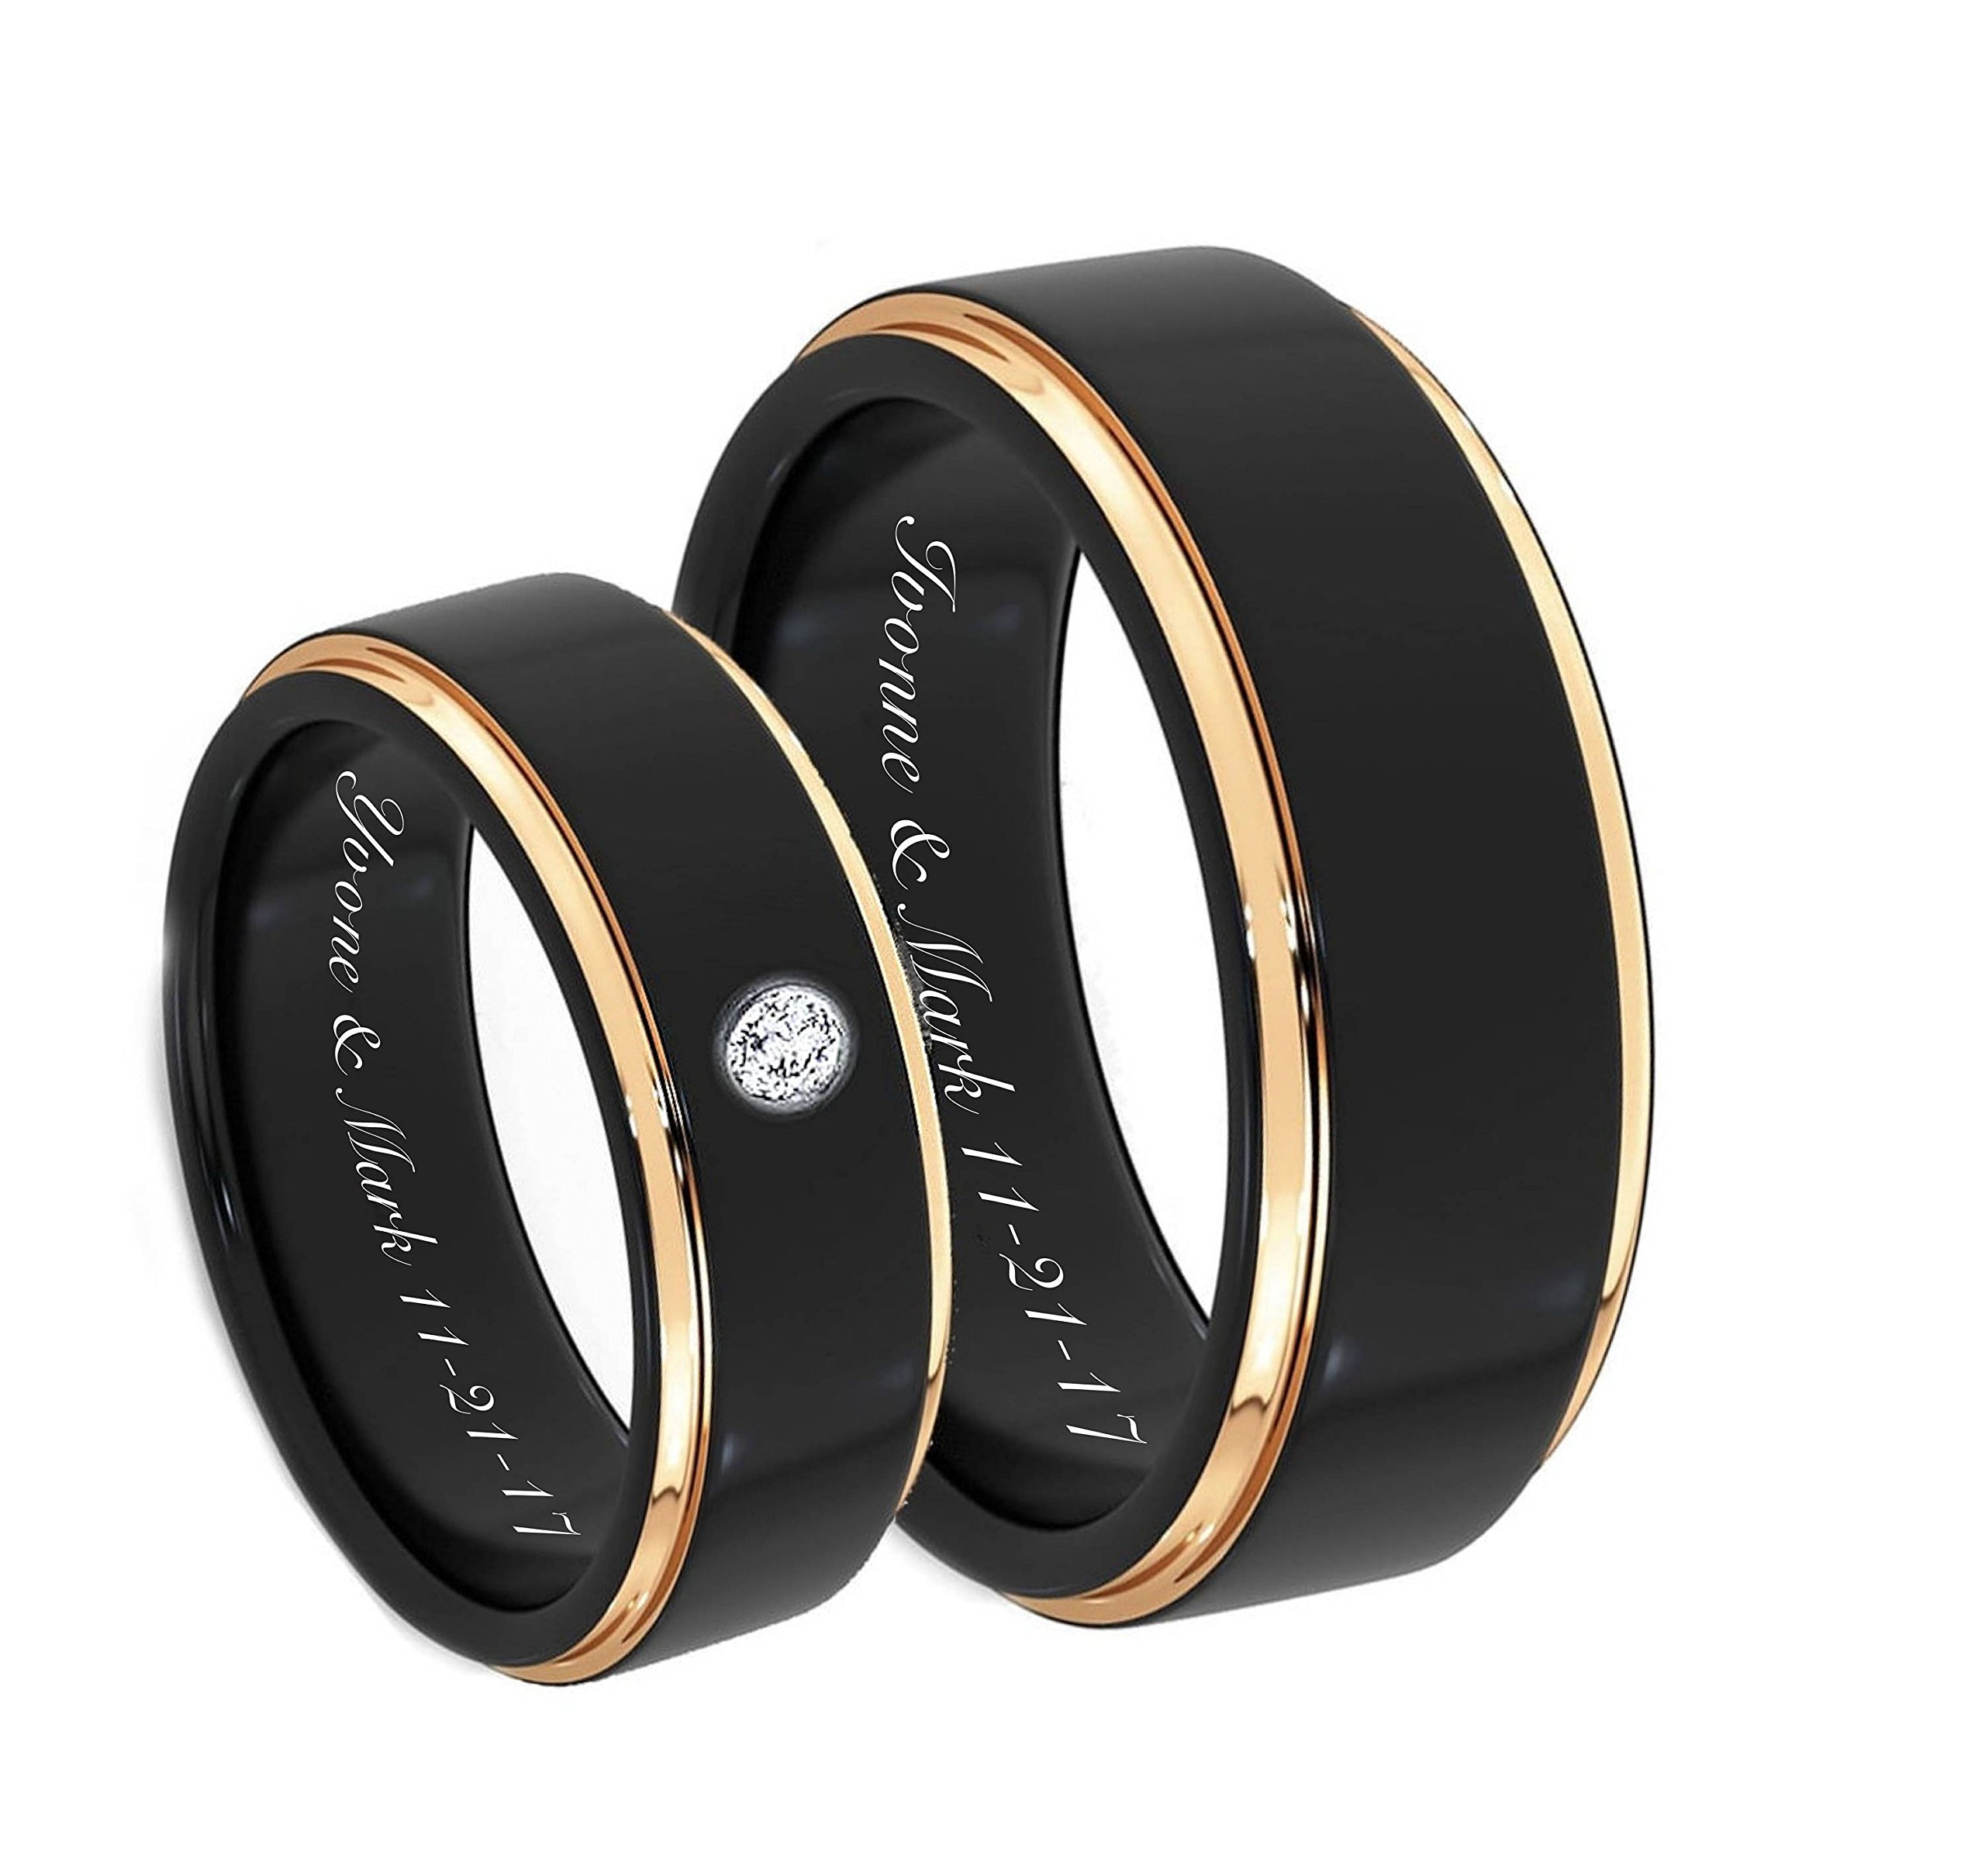 Personalized Stainless Steel Beveled Cut Couple's Ring Set Custom Engraved Free by aandlengraving